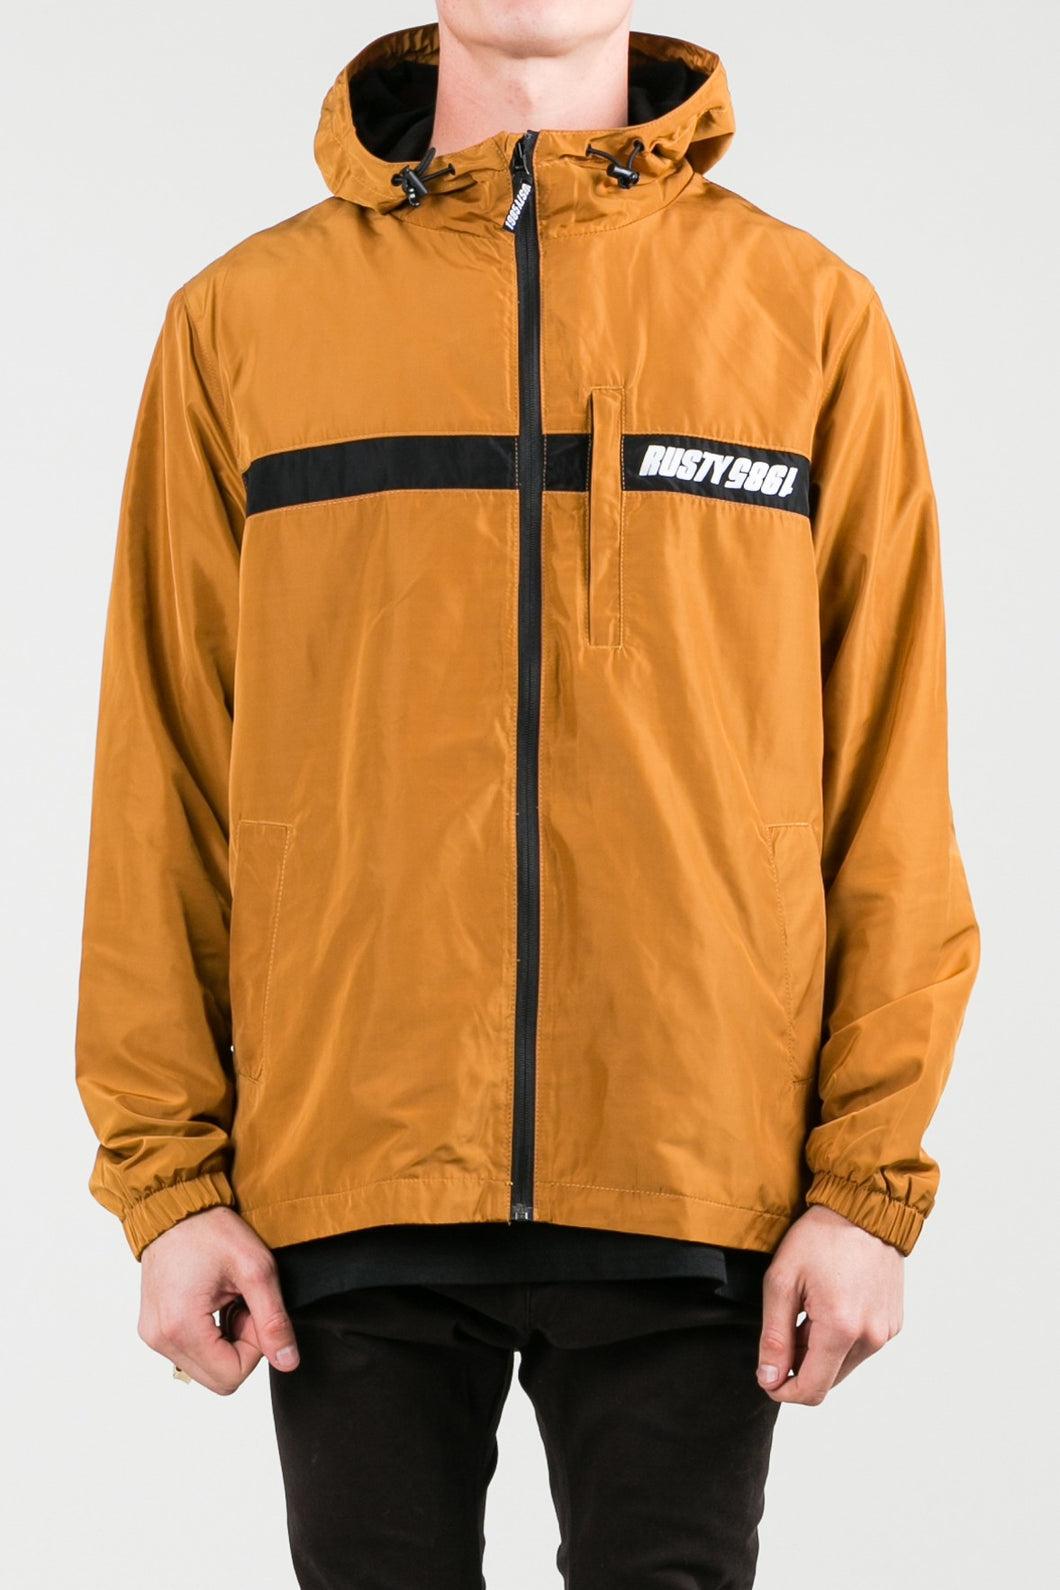 Rusty Men's Decades Hooded Jacket - Tobacco